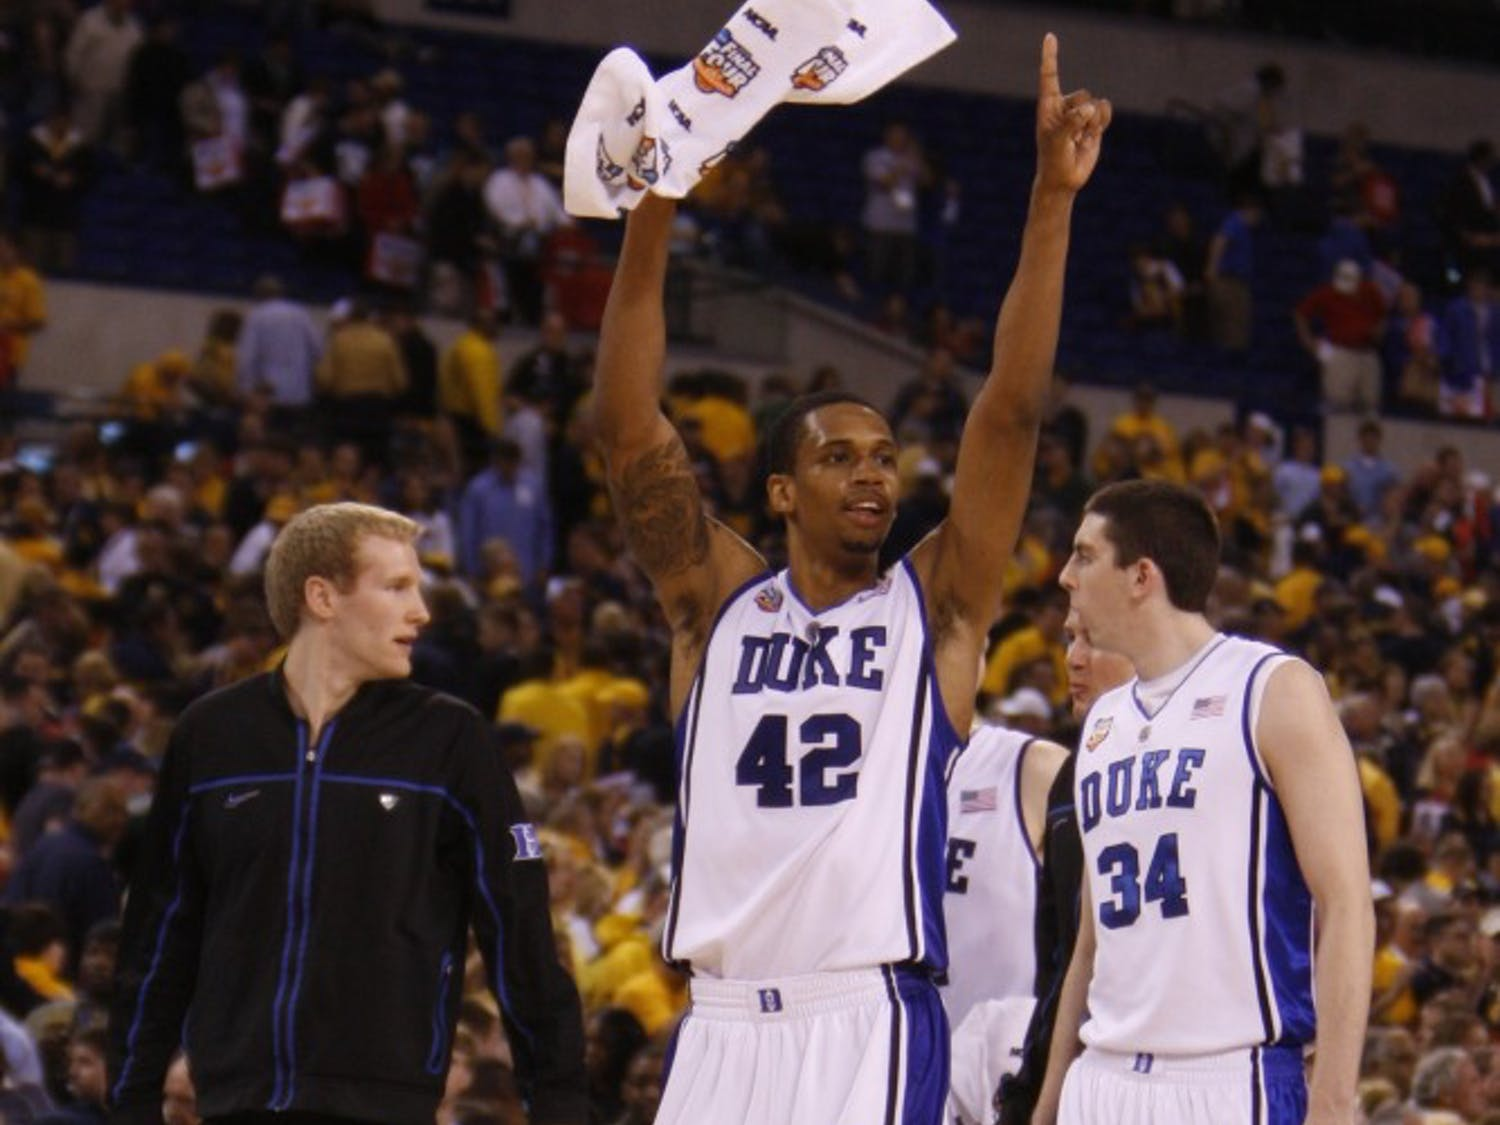 Photos from the Duke Men's Basketball Team's 78-57 win over West Virginia in the semifinals of the NCAA tournament.